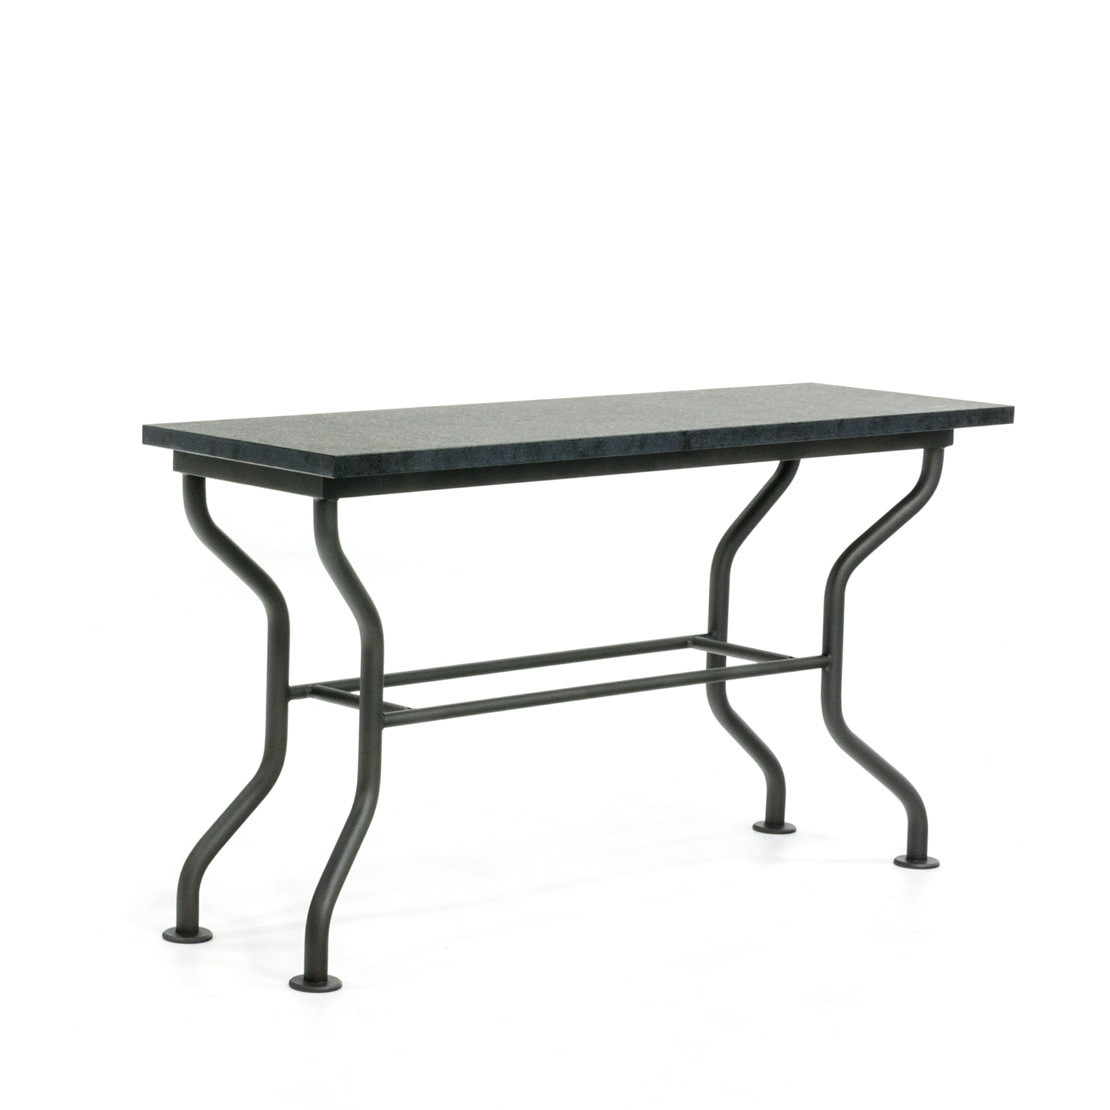 Side-table met basalt (gevlamd) blad